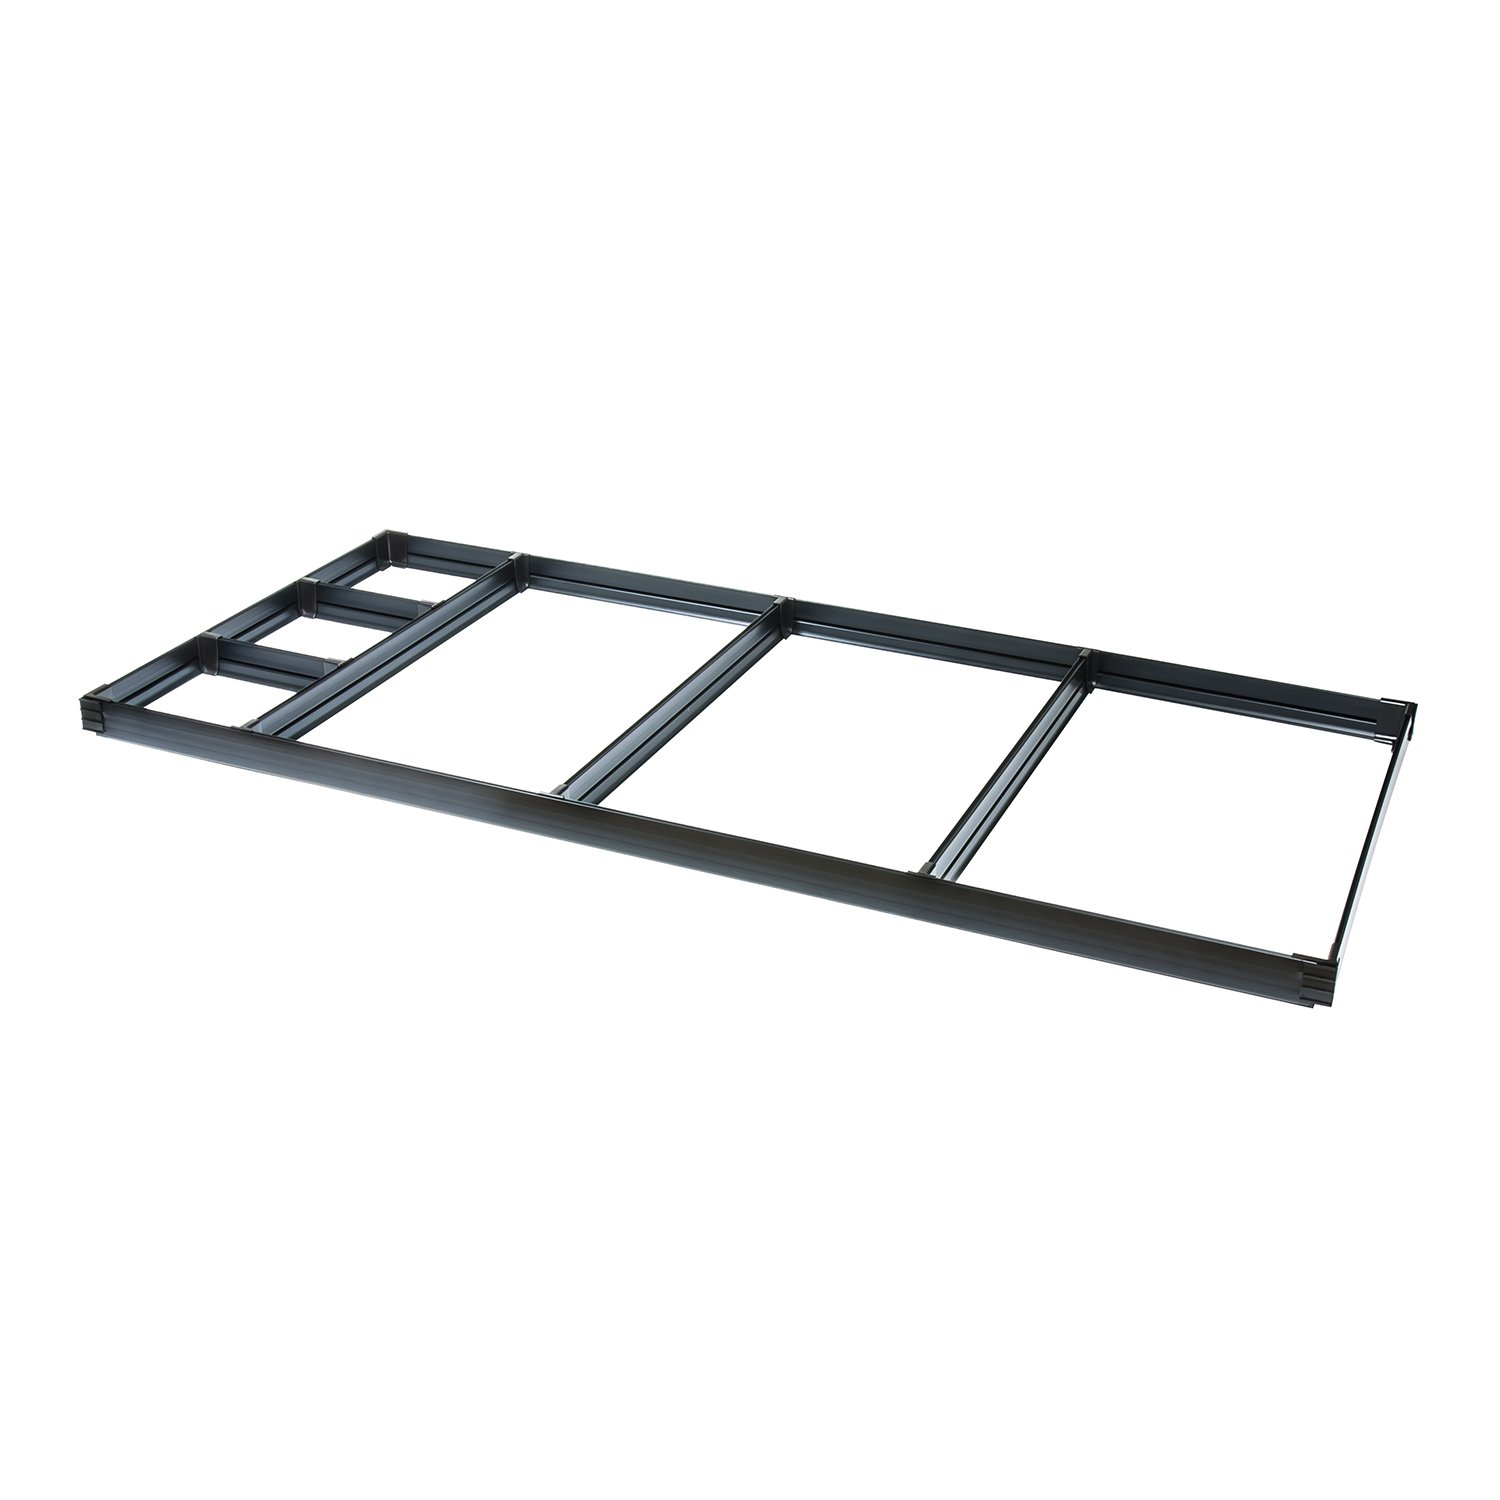 Ernst Manufacturing 2.9-Inch Drawer Divider System, 6-Compartments 4302